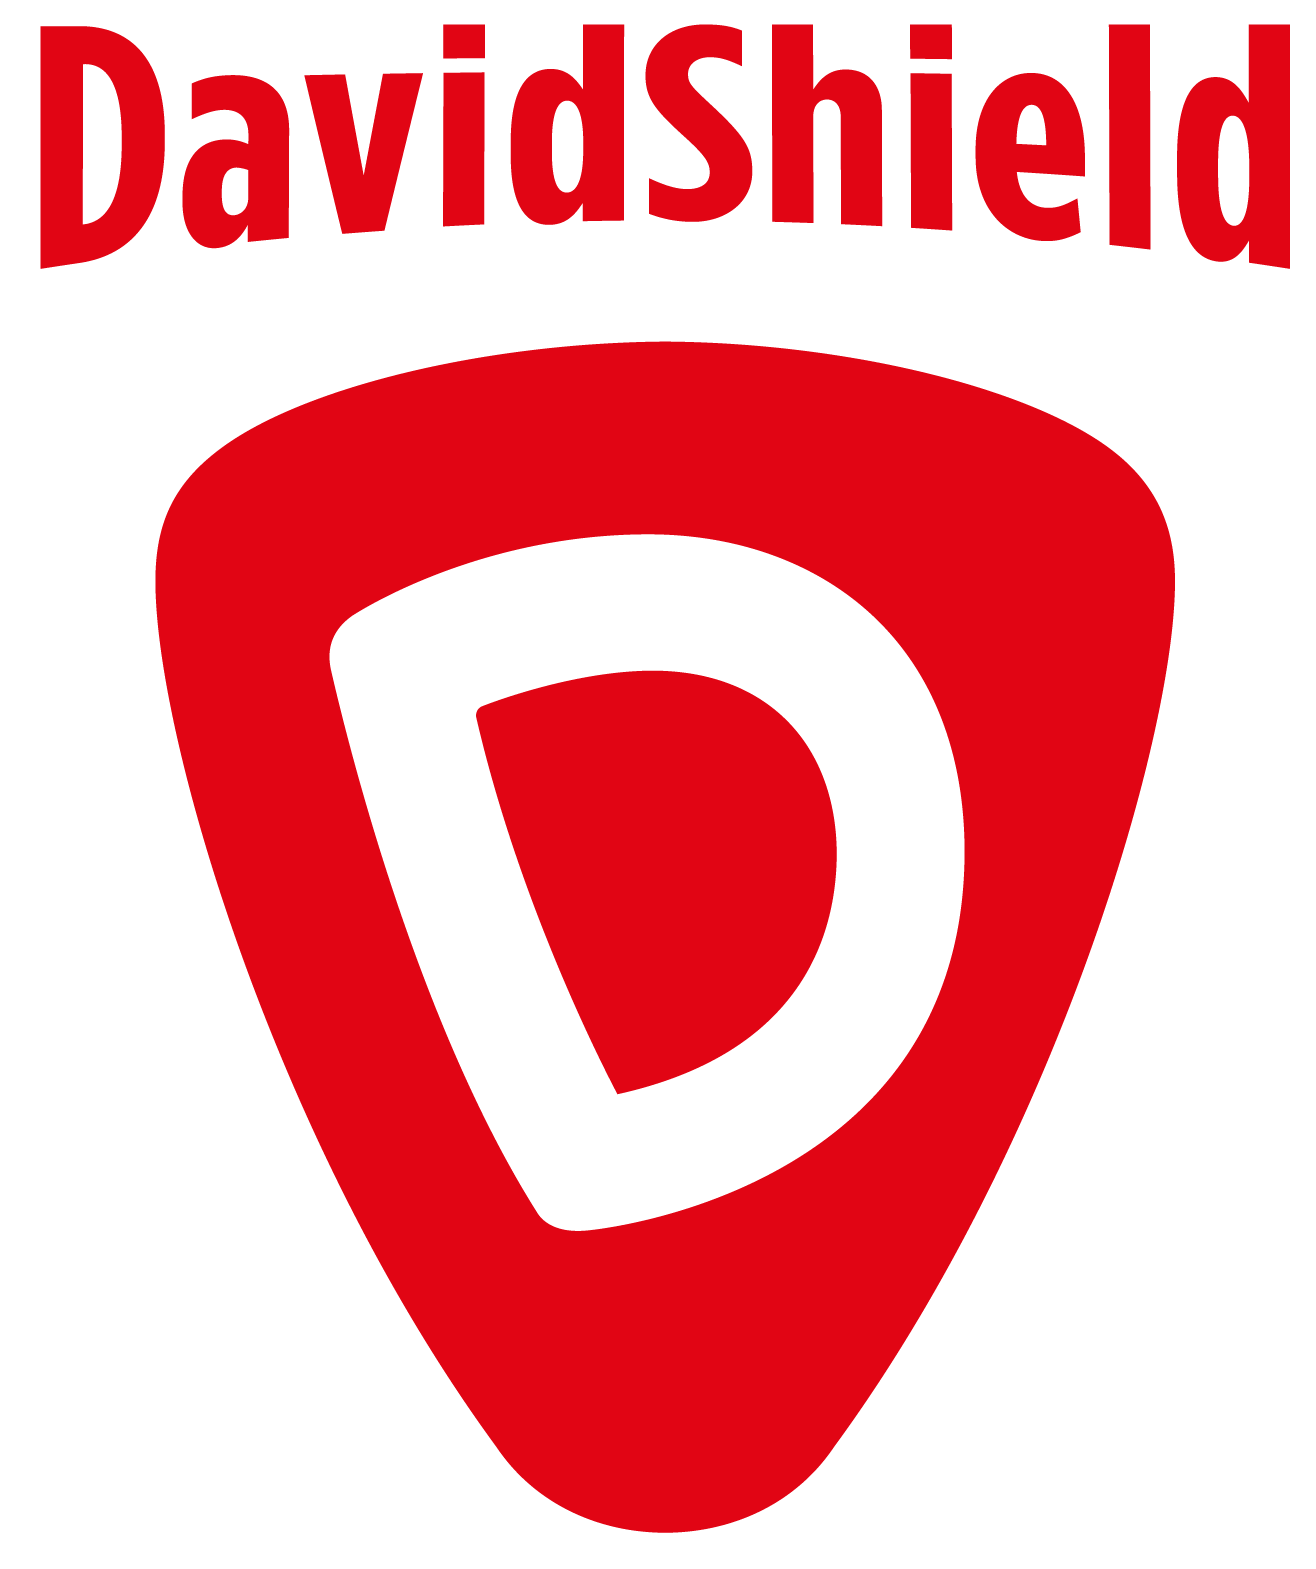 davidshield skype therapy